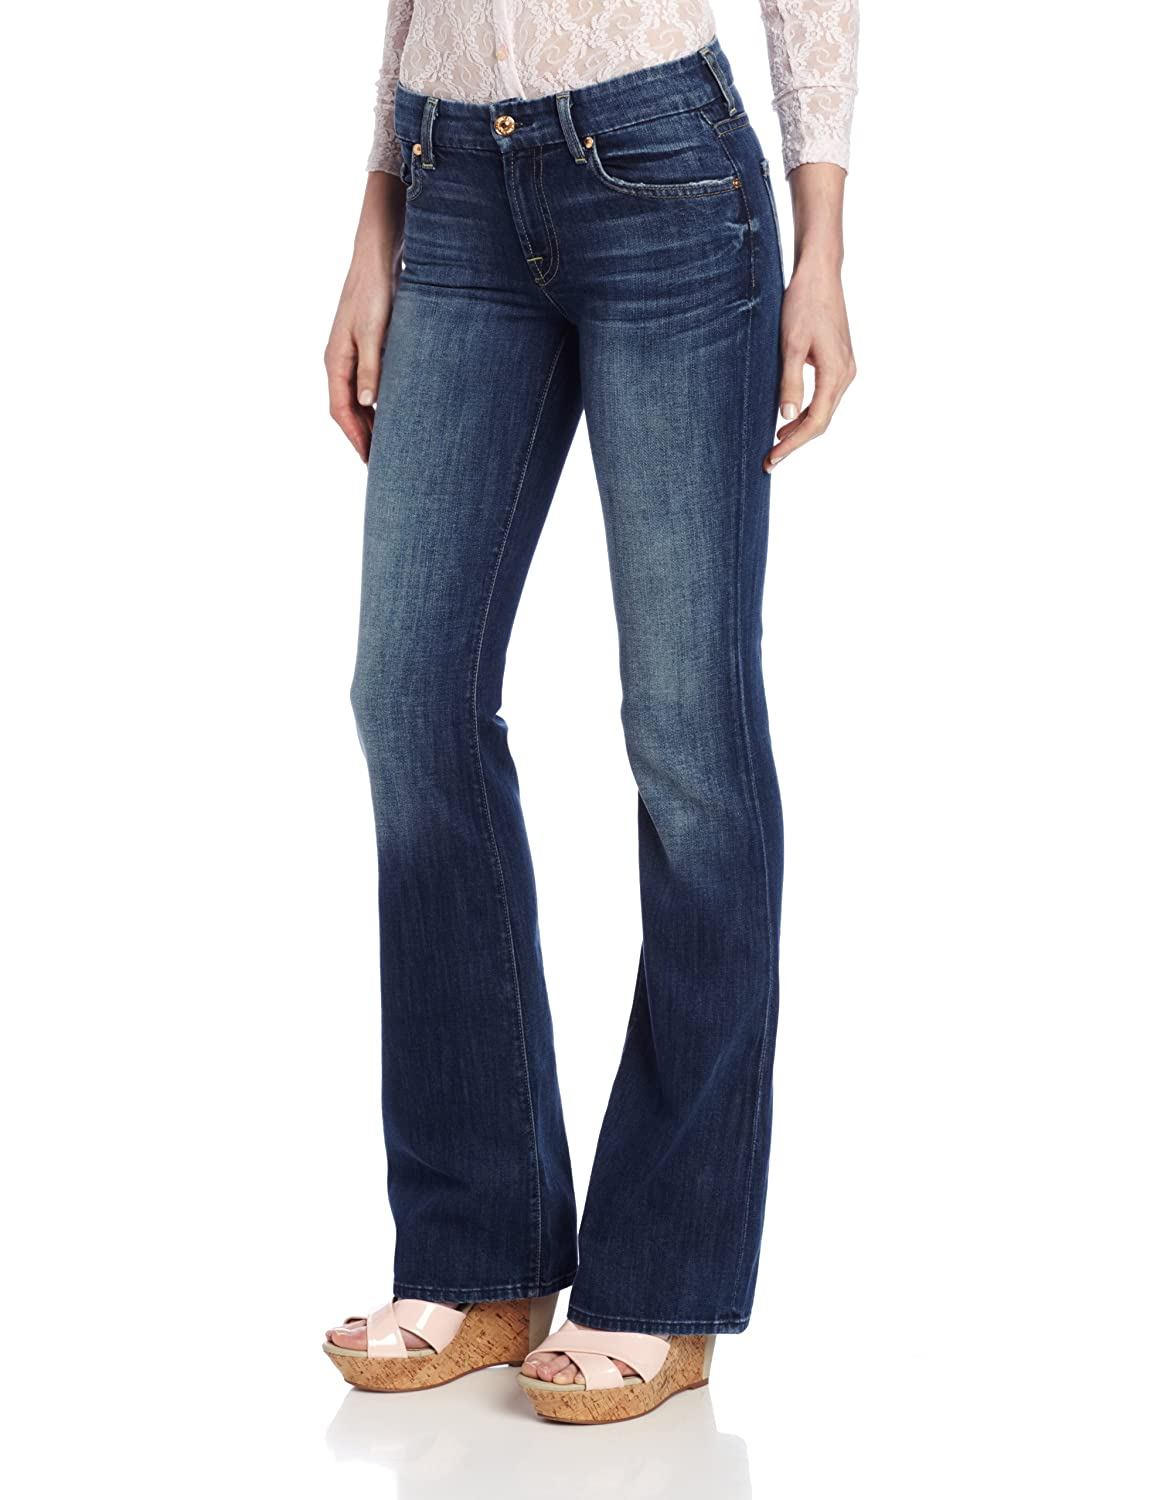 7 For All Mankind Women's Kimmie Bootcut Jean in Authentic Bright Blue